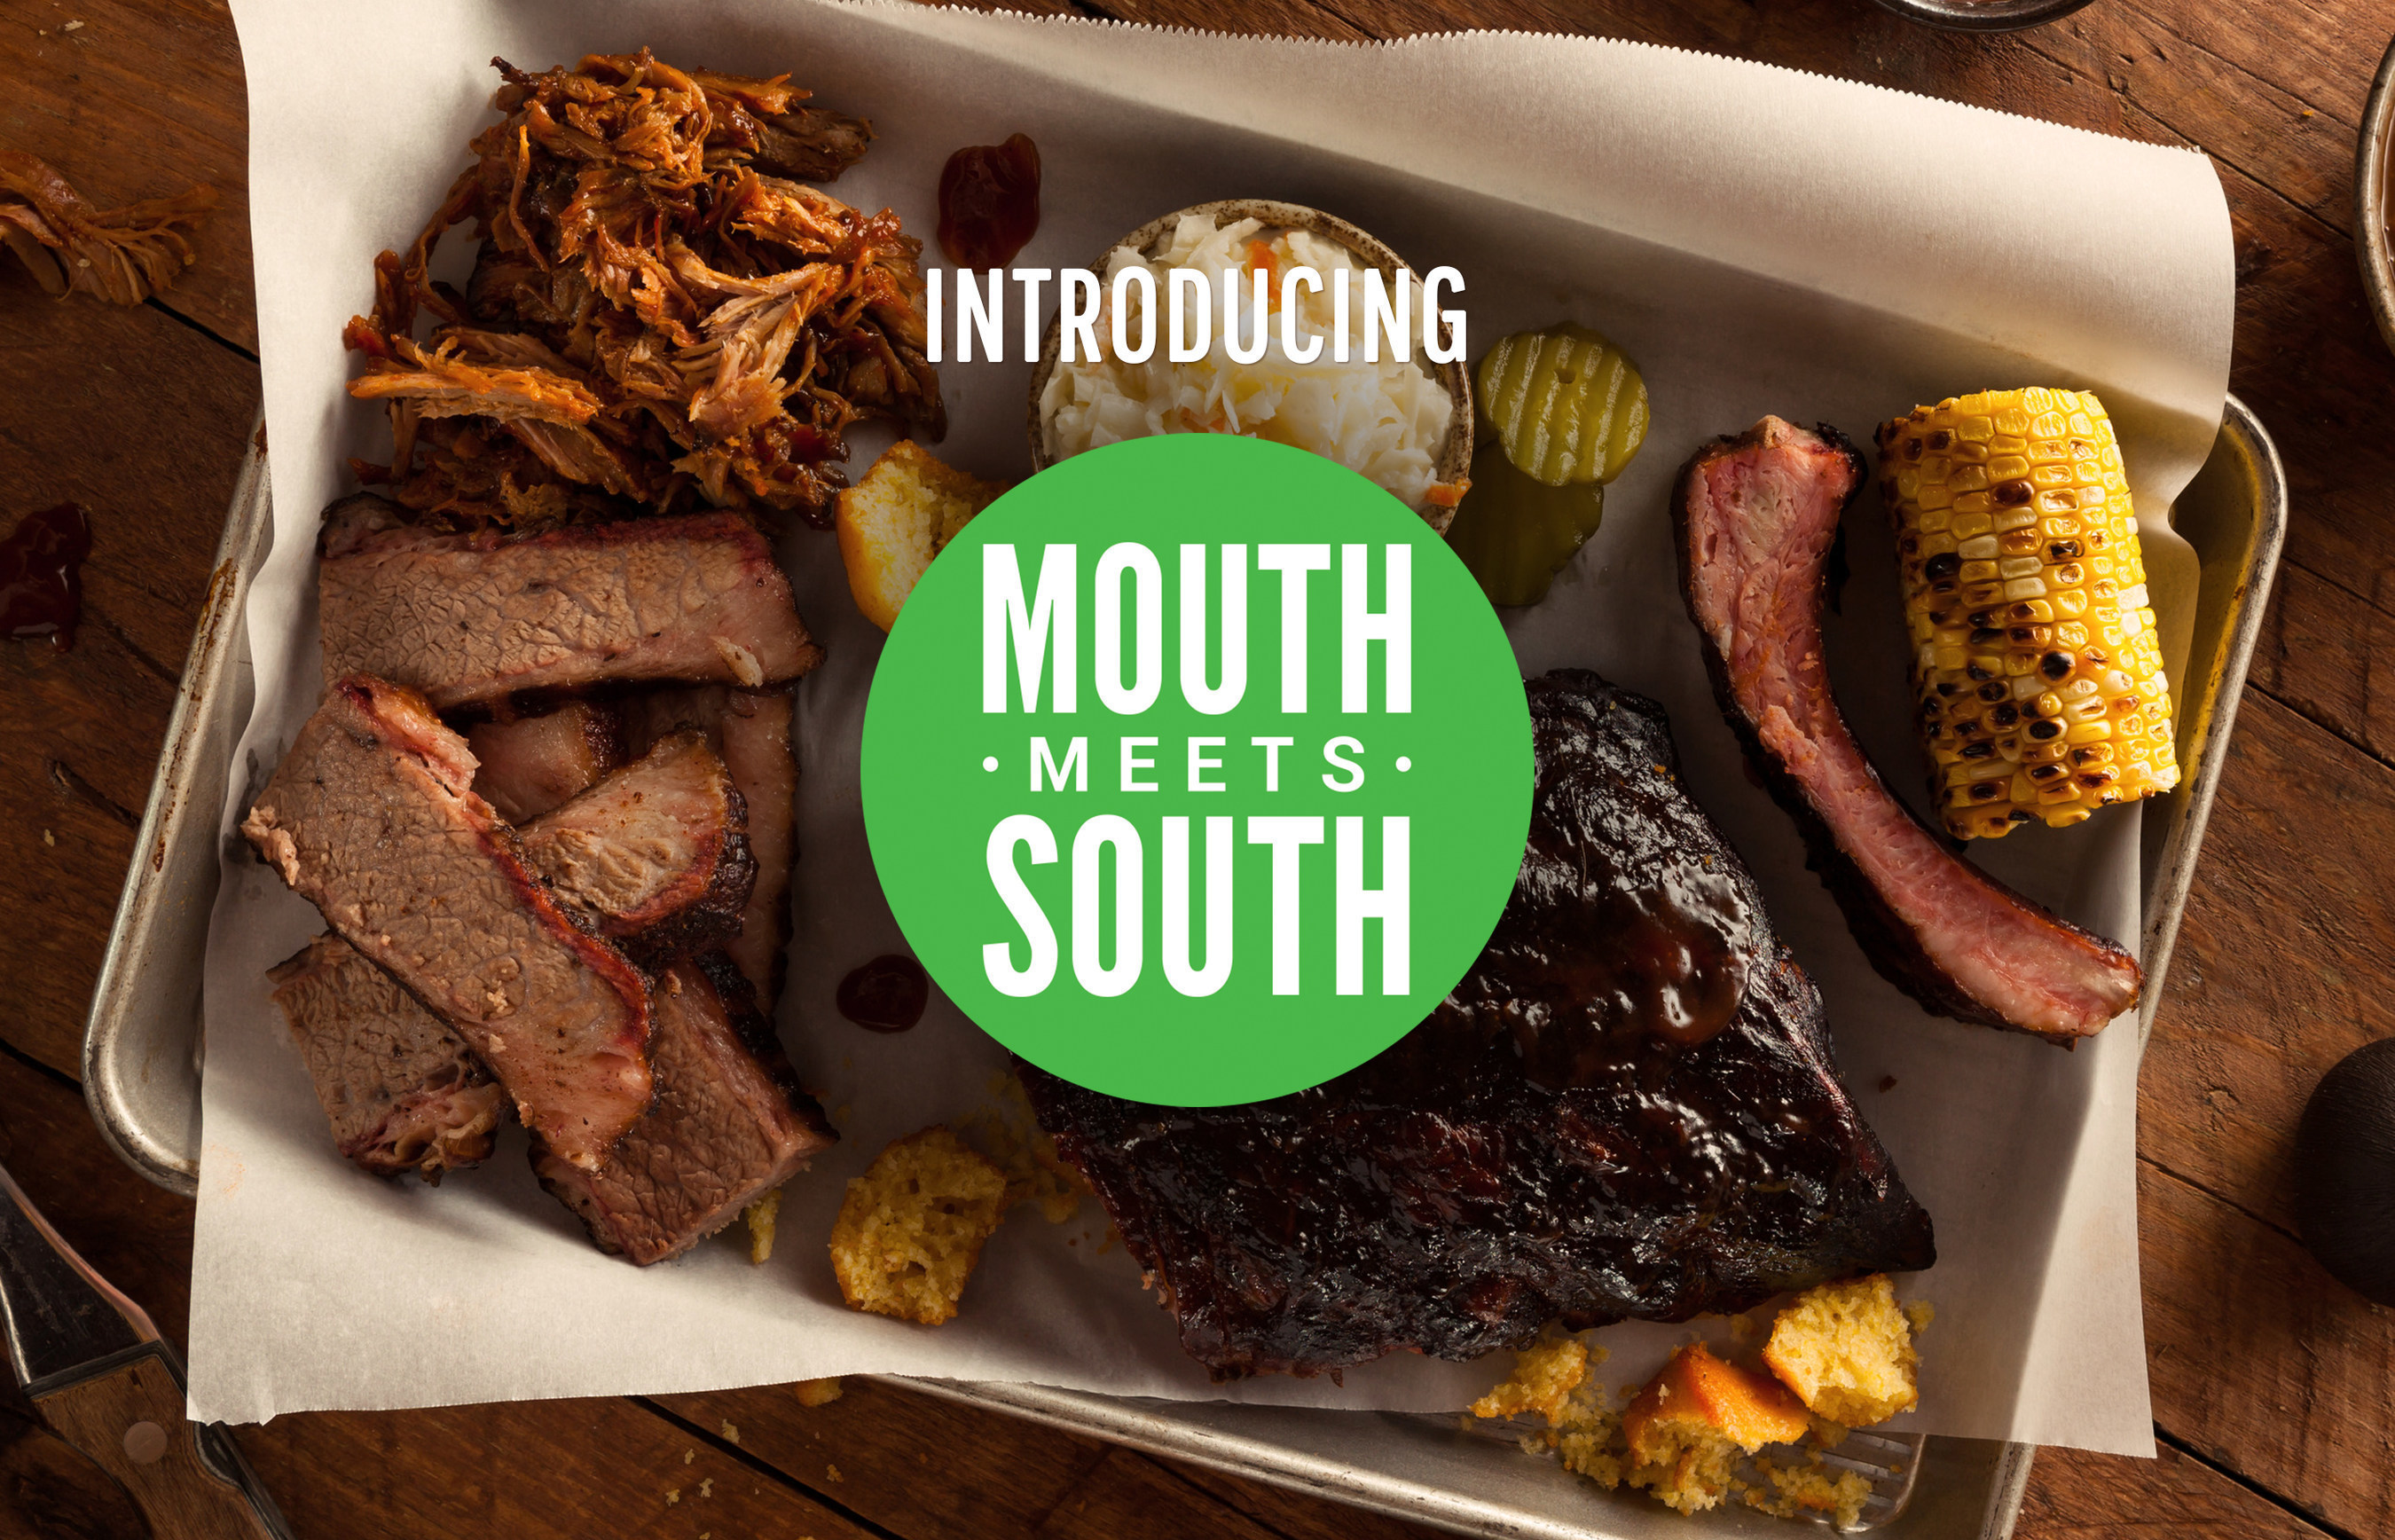 Mouth Meets South™ Fills Void in Grocer Freezer Section and Captures Essence of Southern Cuisine in